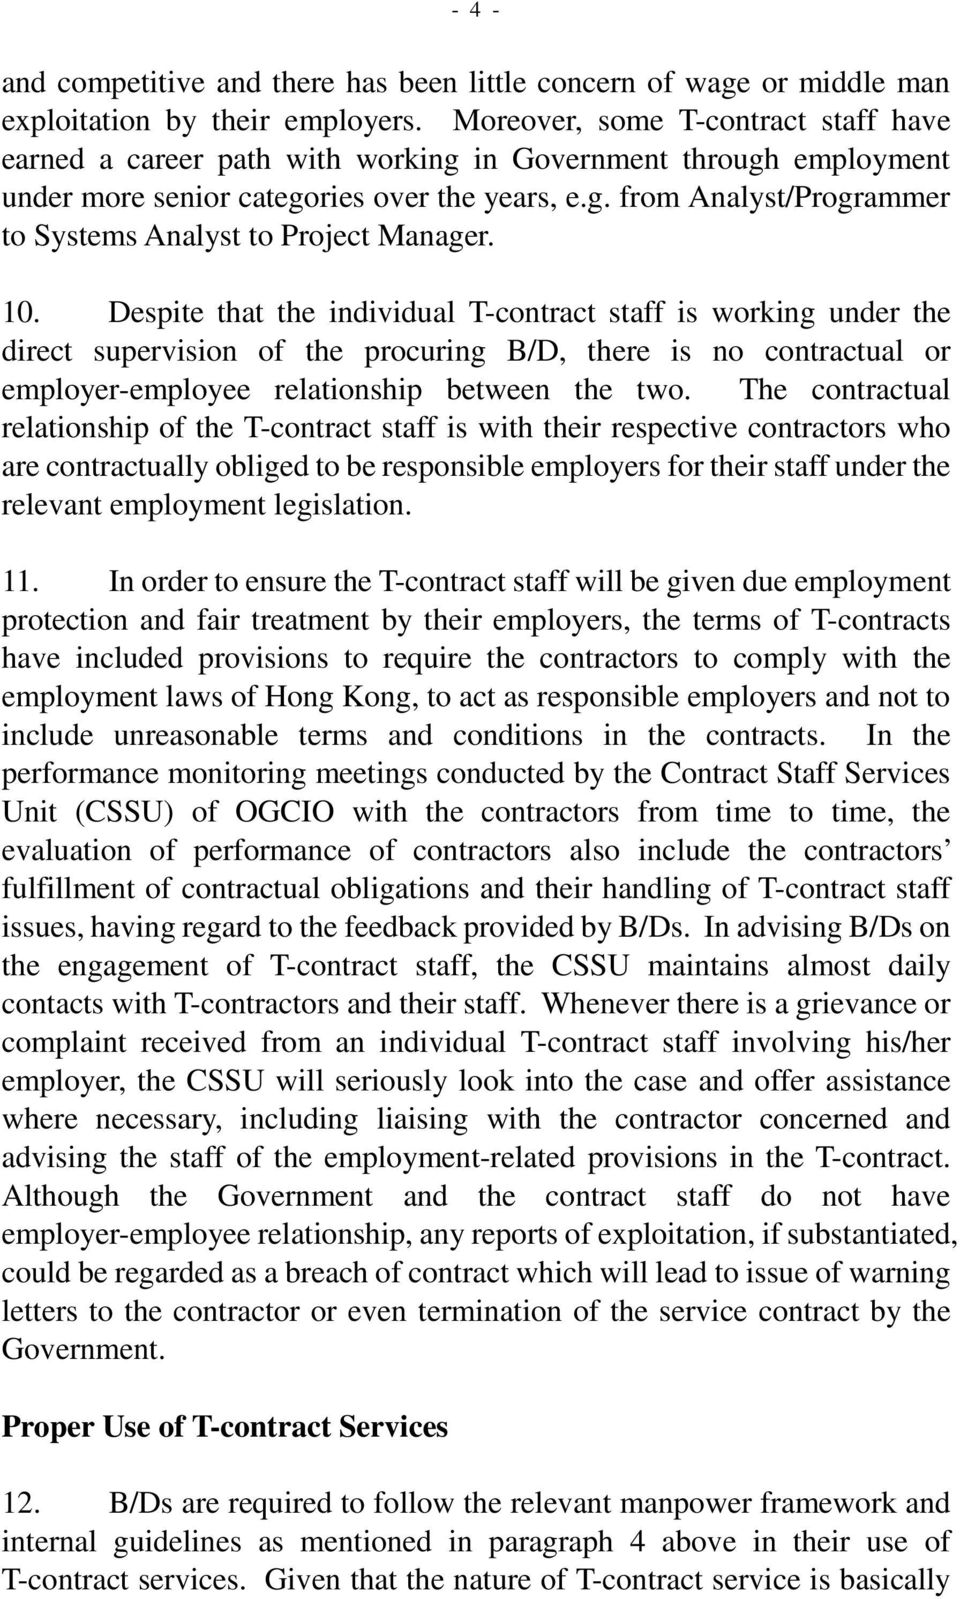 10. Despite that the individual T-contract staff is working under the direct supervision of the procuring B/D, there is no contractual or employer-employee relationship between the two.